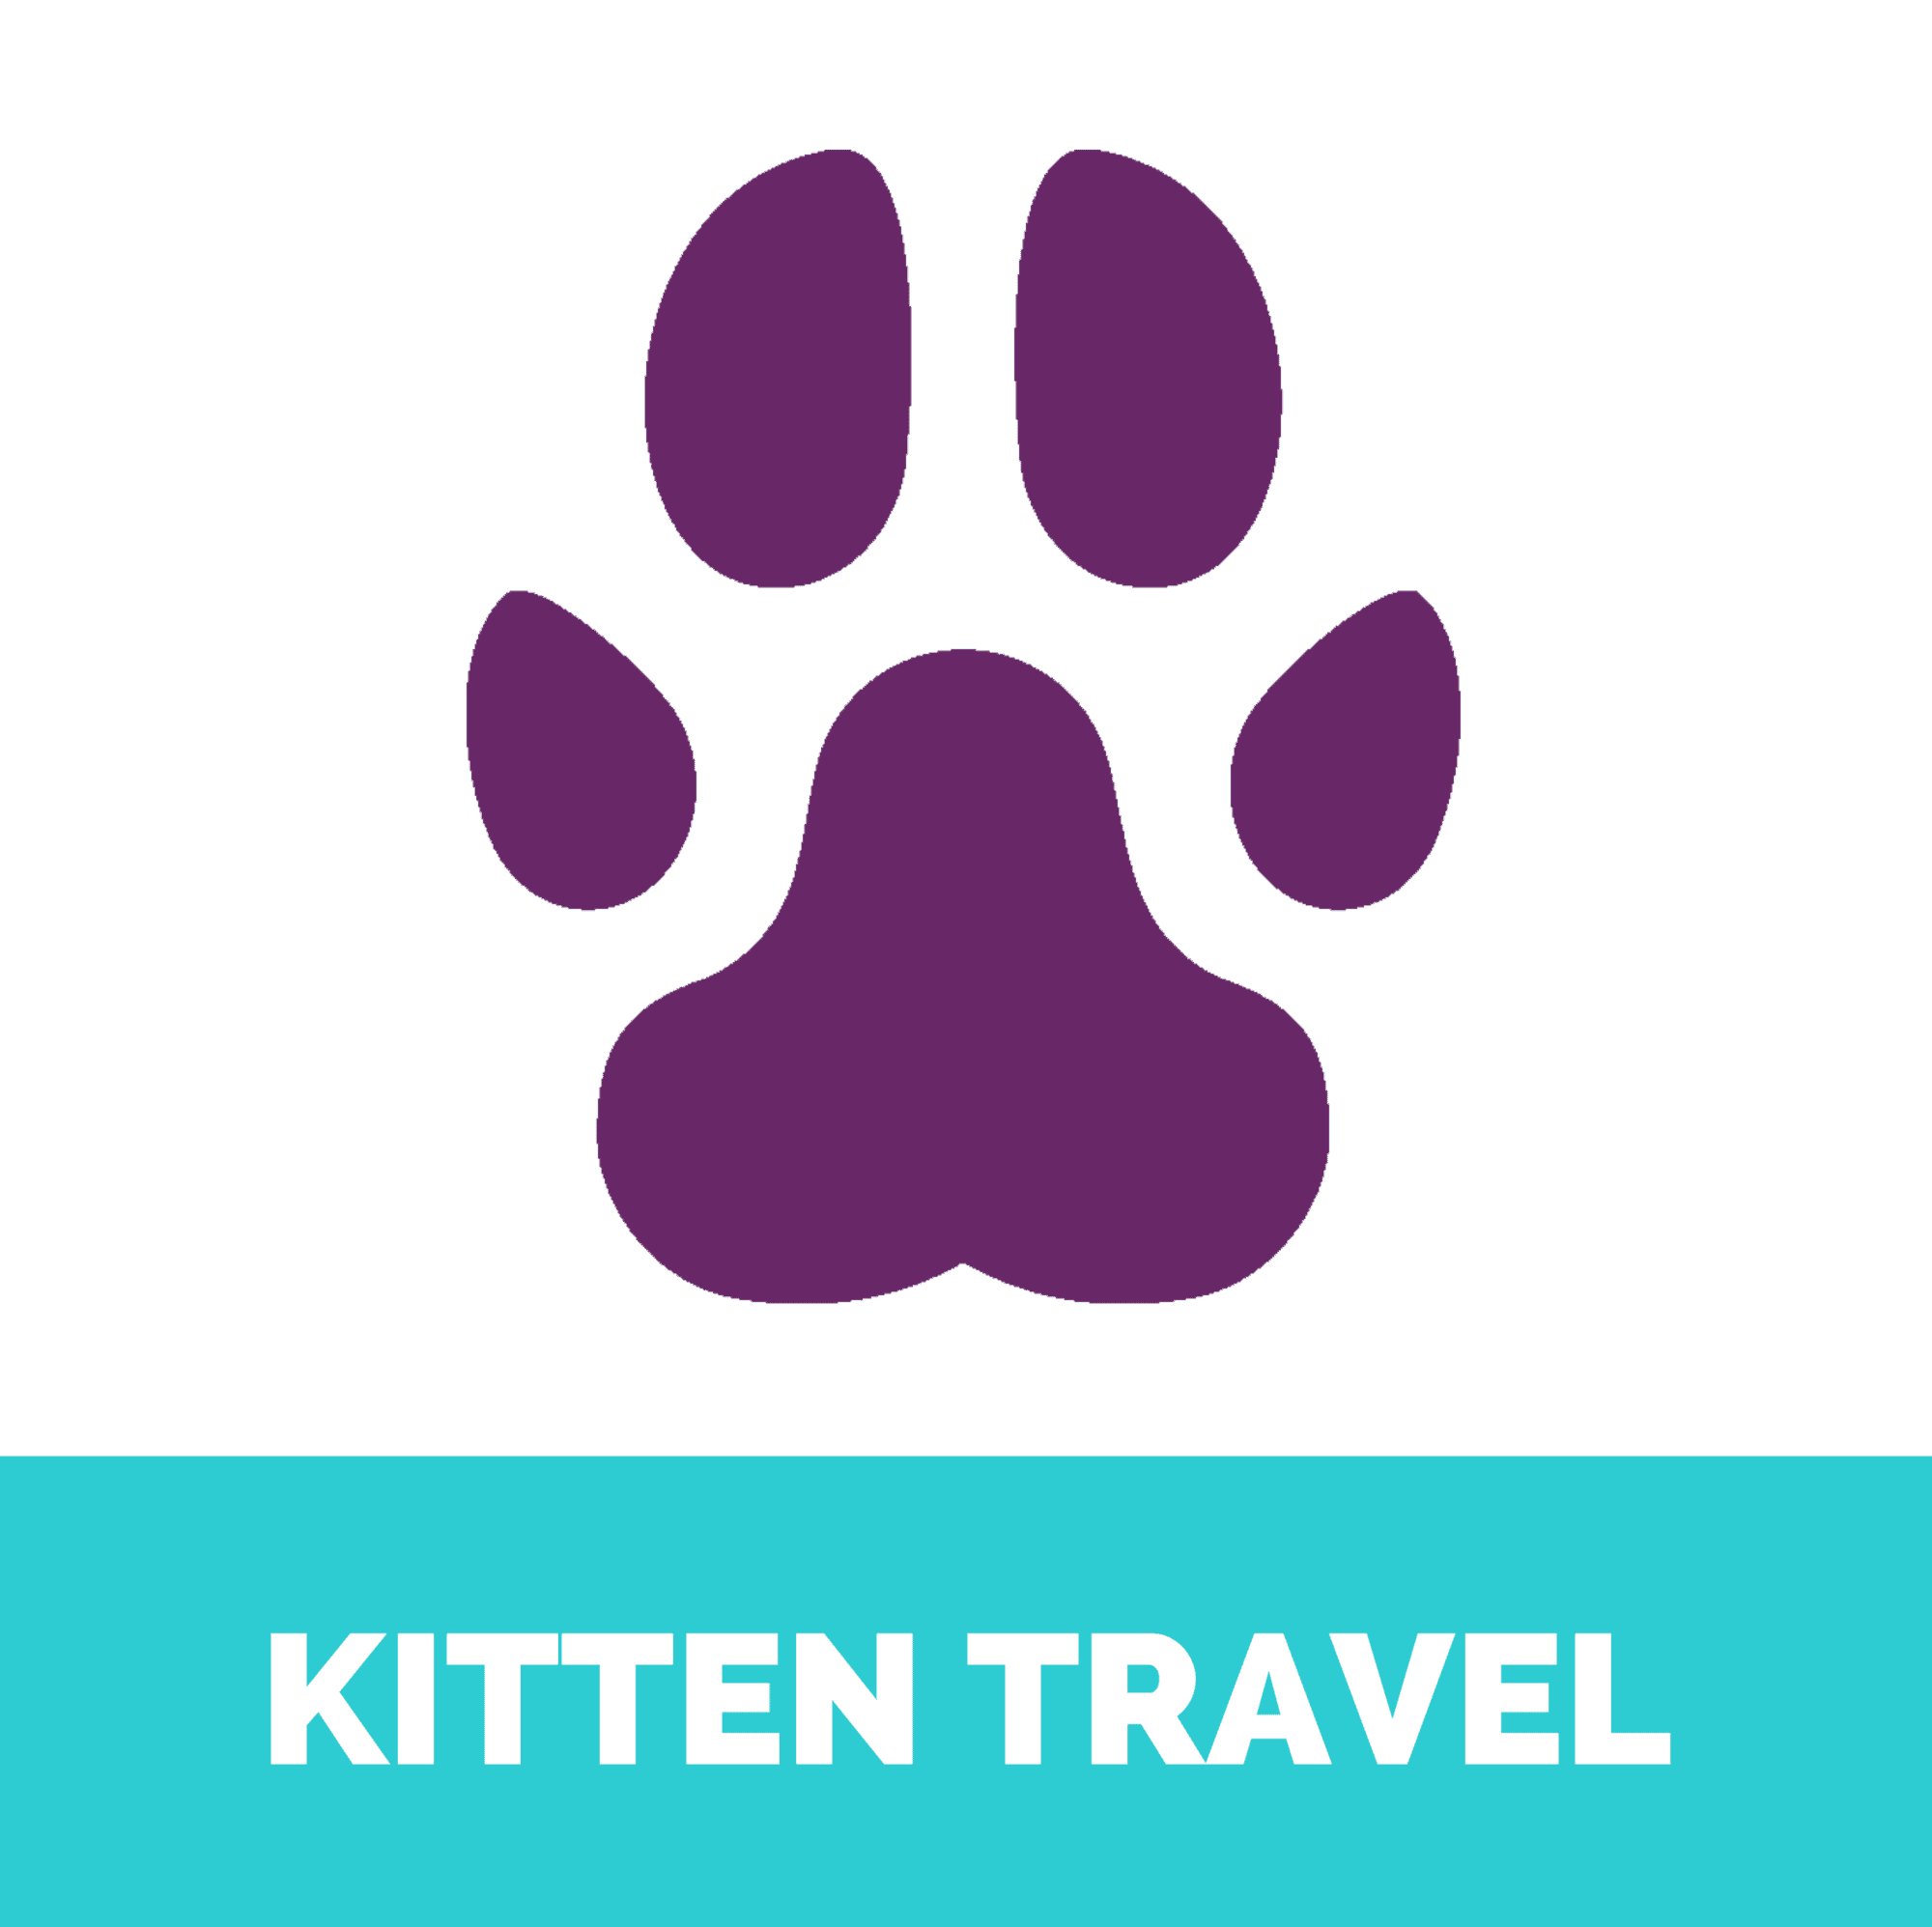 Kitten travel